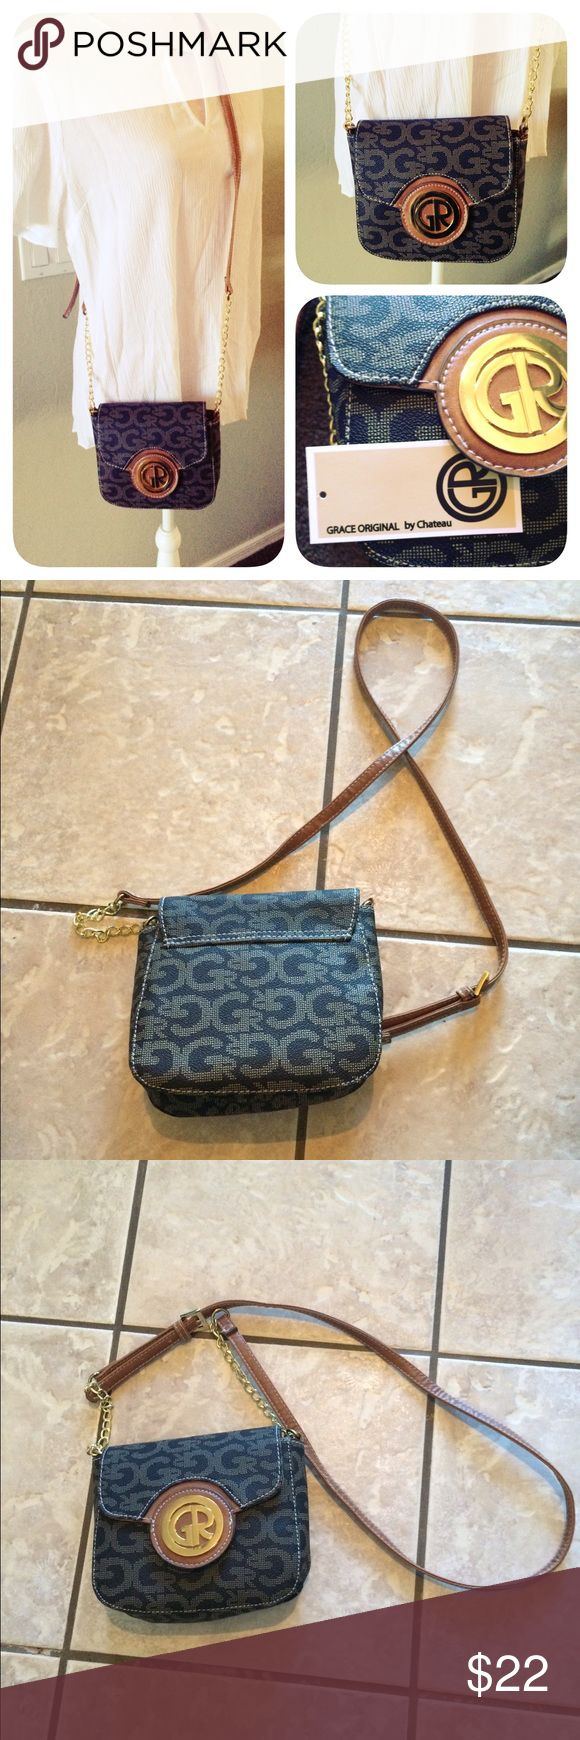 "NWT Grace Original by Chateau Crossbody Bag Brand new with tags cross body Chateau bag. Never used, very cute and fits everything perfectly. Adjustable strap, longest setting is 31"". Man made materials. Made in China. Chateau Bags Crossbody Bags"